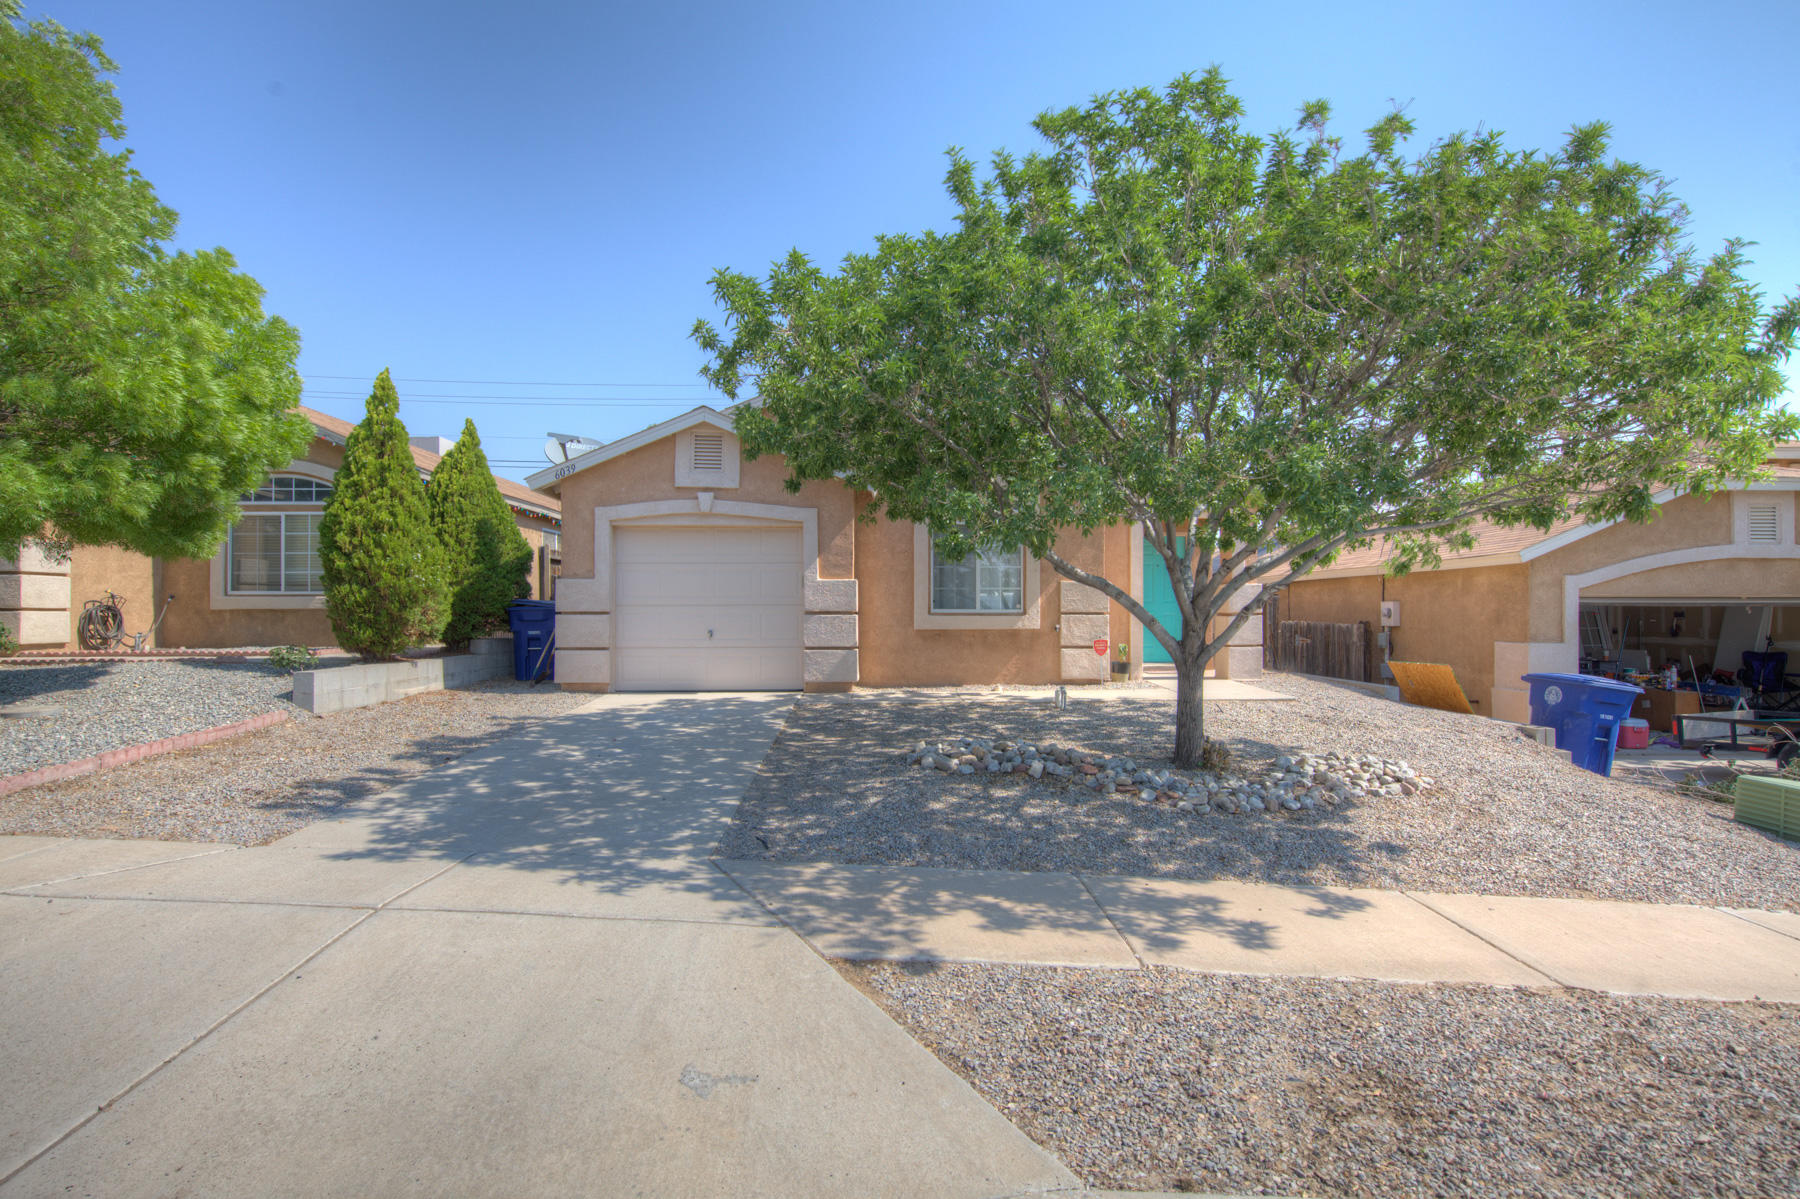 Welcome to this wonderful 2 bed 2 bath home. No carpet throughout! Stainles steel appliances. Close to shopping, restaurants and Rust Medical Center. Come check it out today.